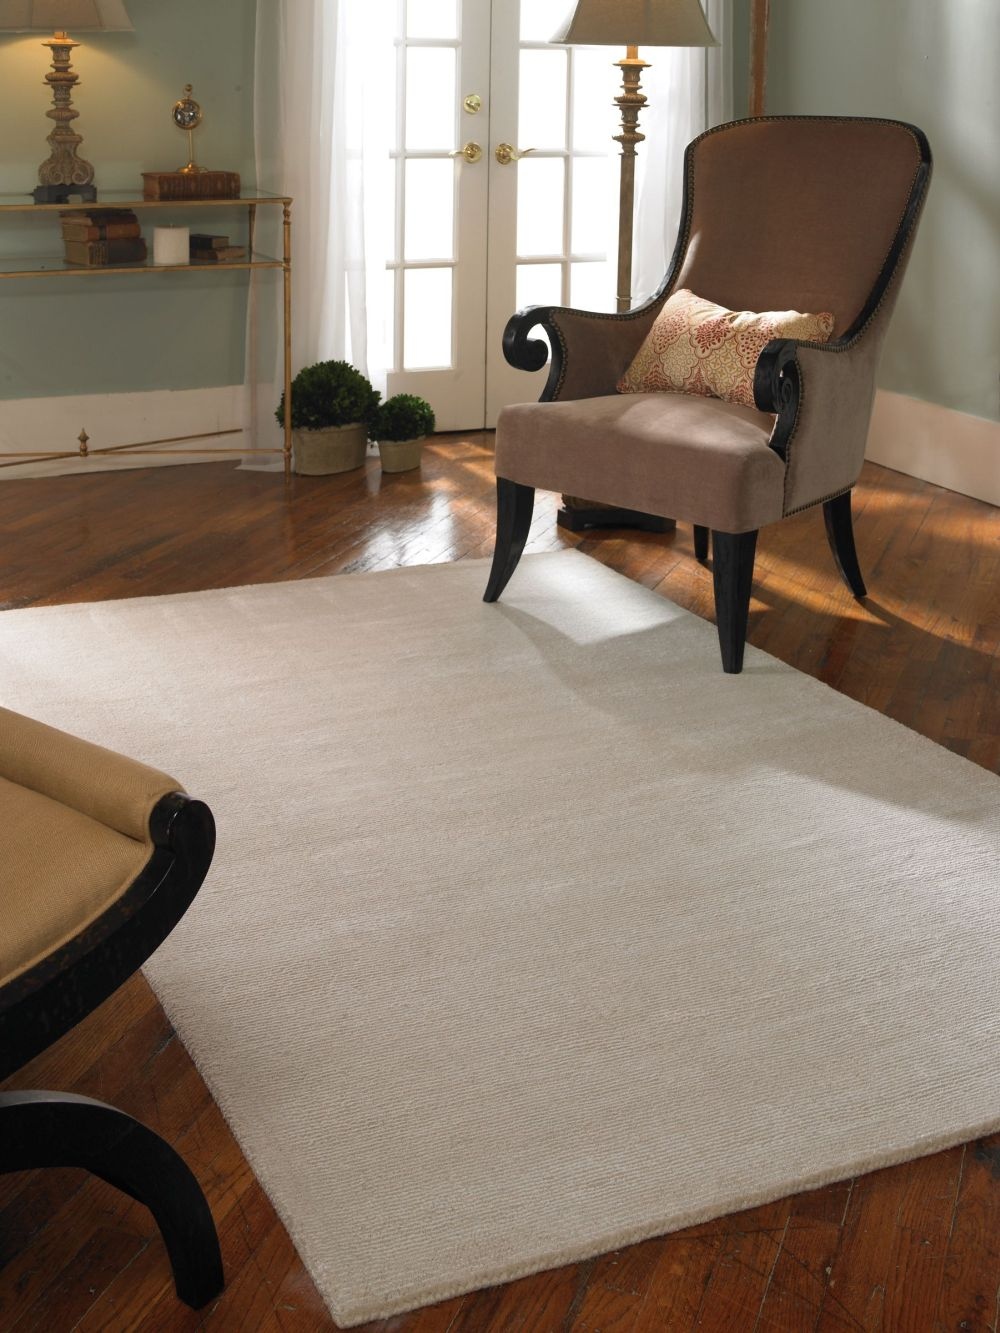 Uttermost 73039 Rhine Rug - Cloud White